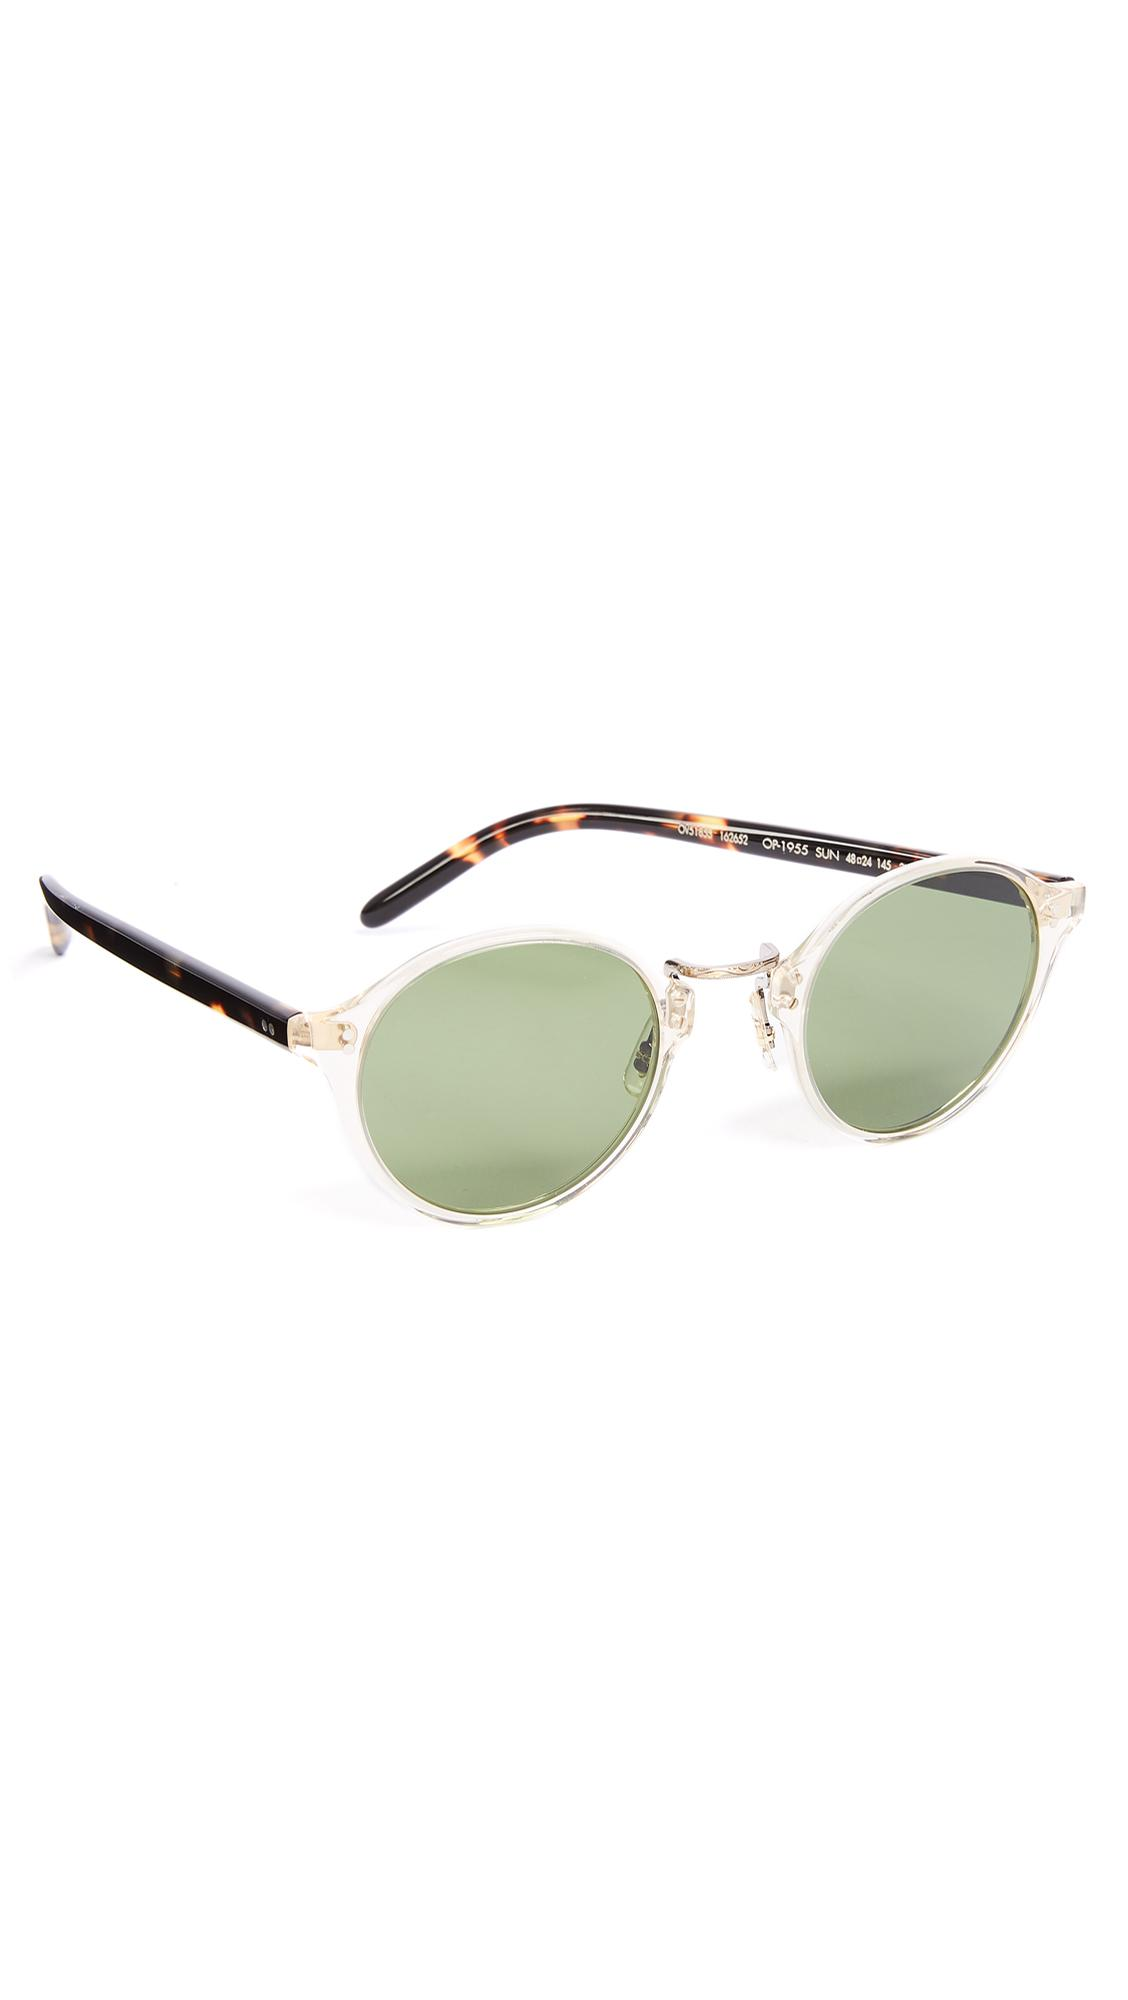 277f348afb0 Lyst - Oliver Peoples Op 1955 Sunglasses in Green for Men